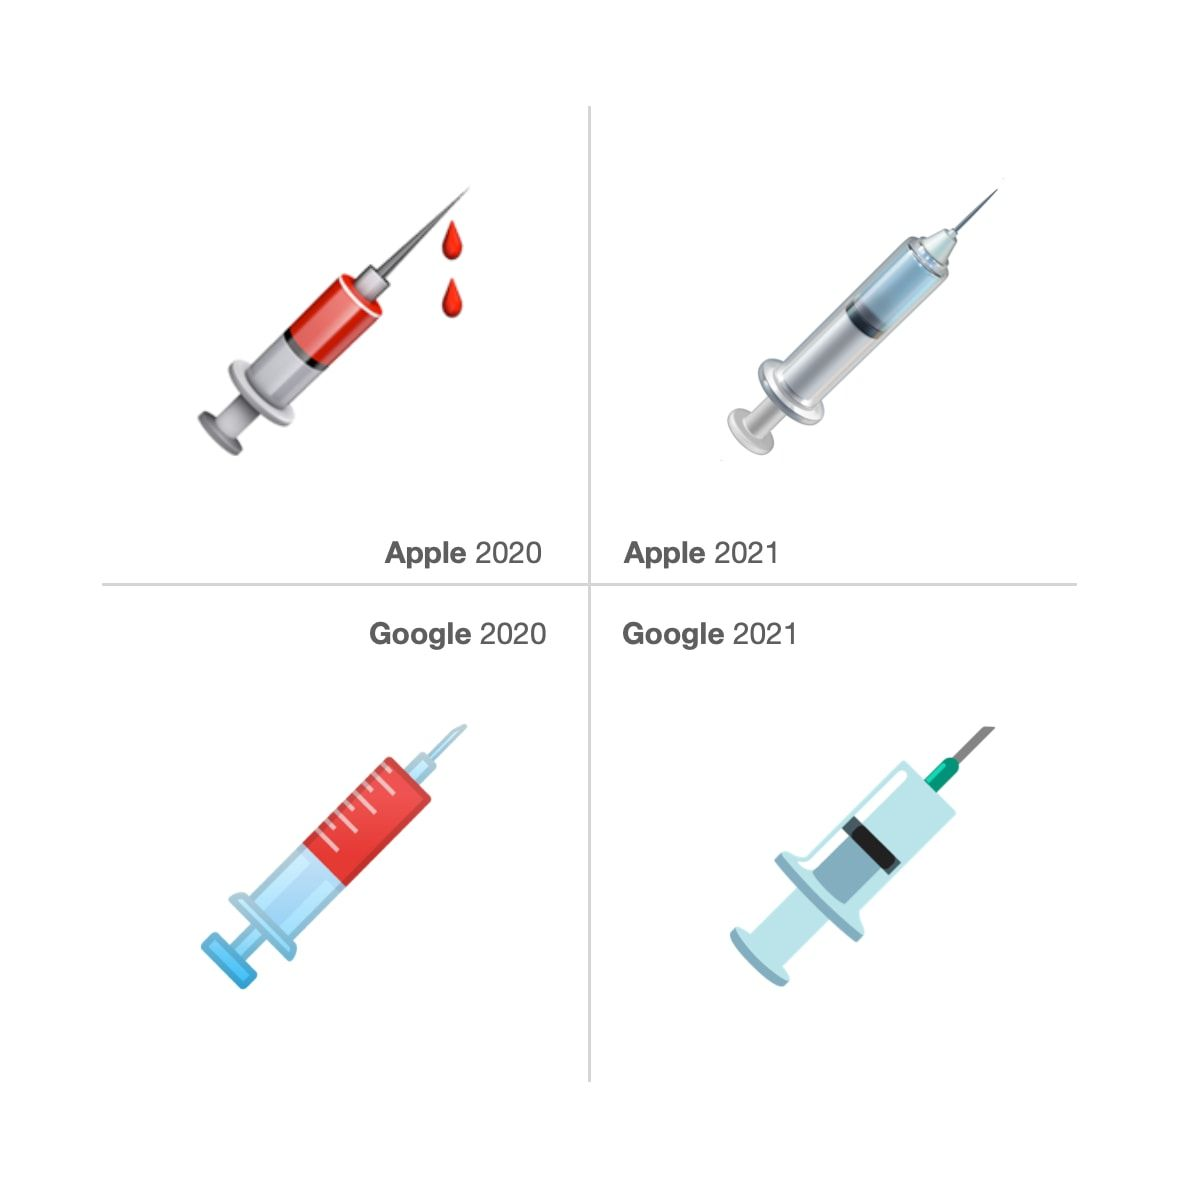 apple-google-syringe-emoji-updates-2020-2021